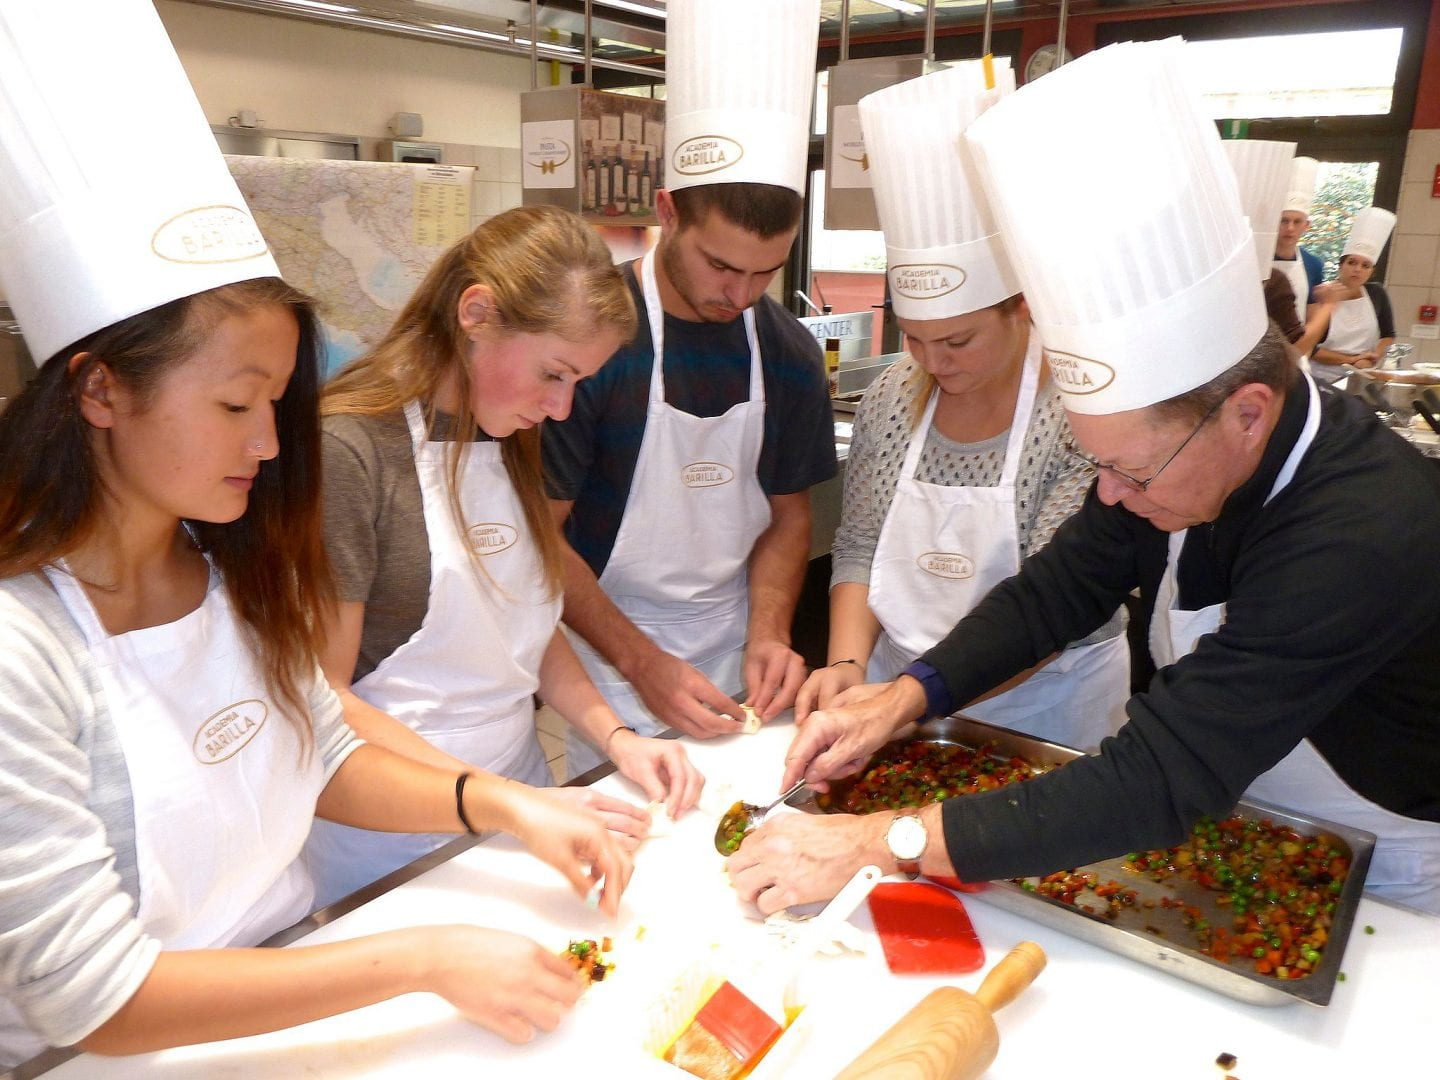 Dr. Eastman joins a trip to study culinary science in Italy